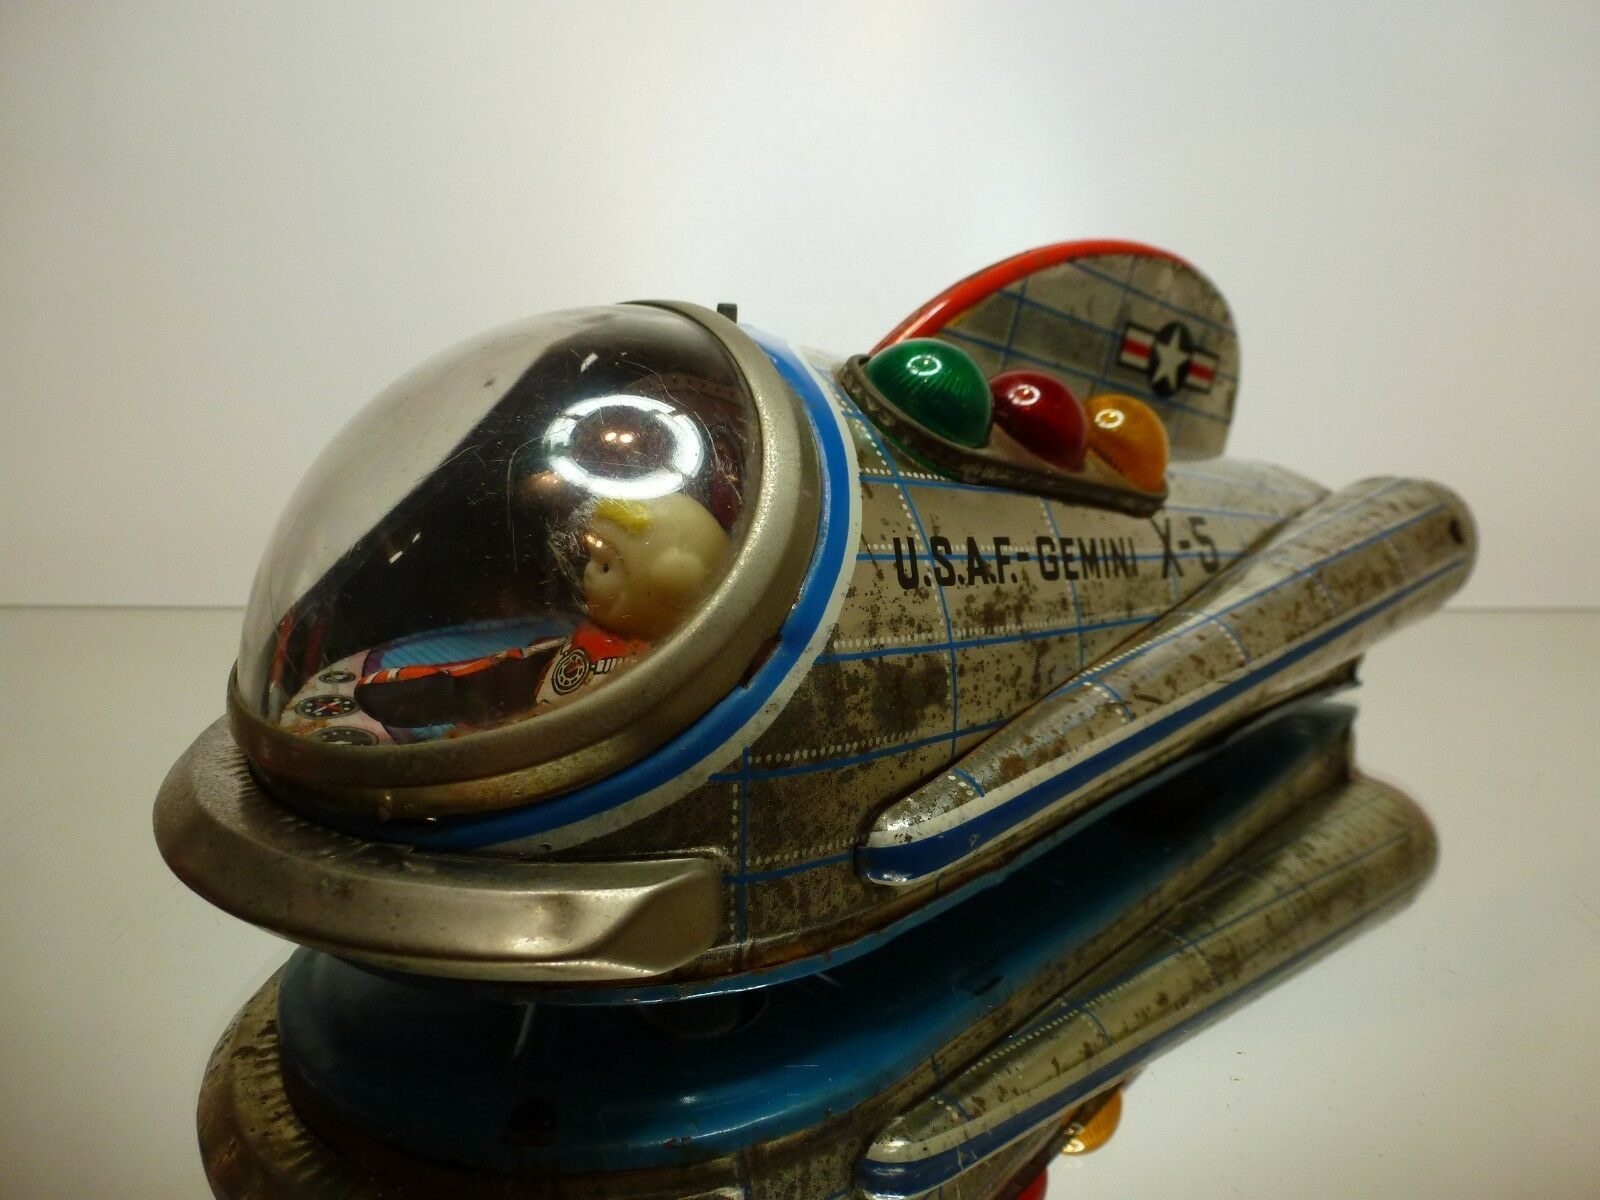 MODERN TOYS JAPAN SPACE SHIP U.S.A.F GEMINI X-5 L24.0cm BATTERY-  GOOD CONDITION